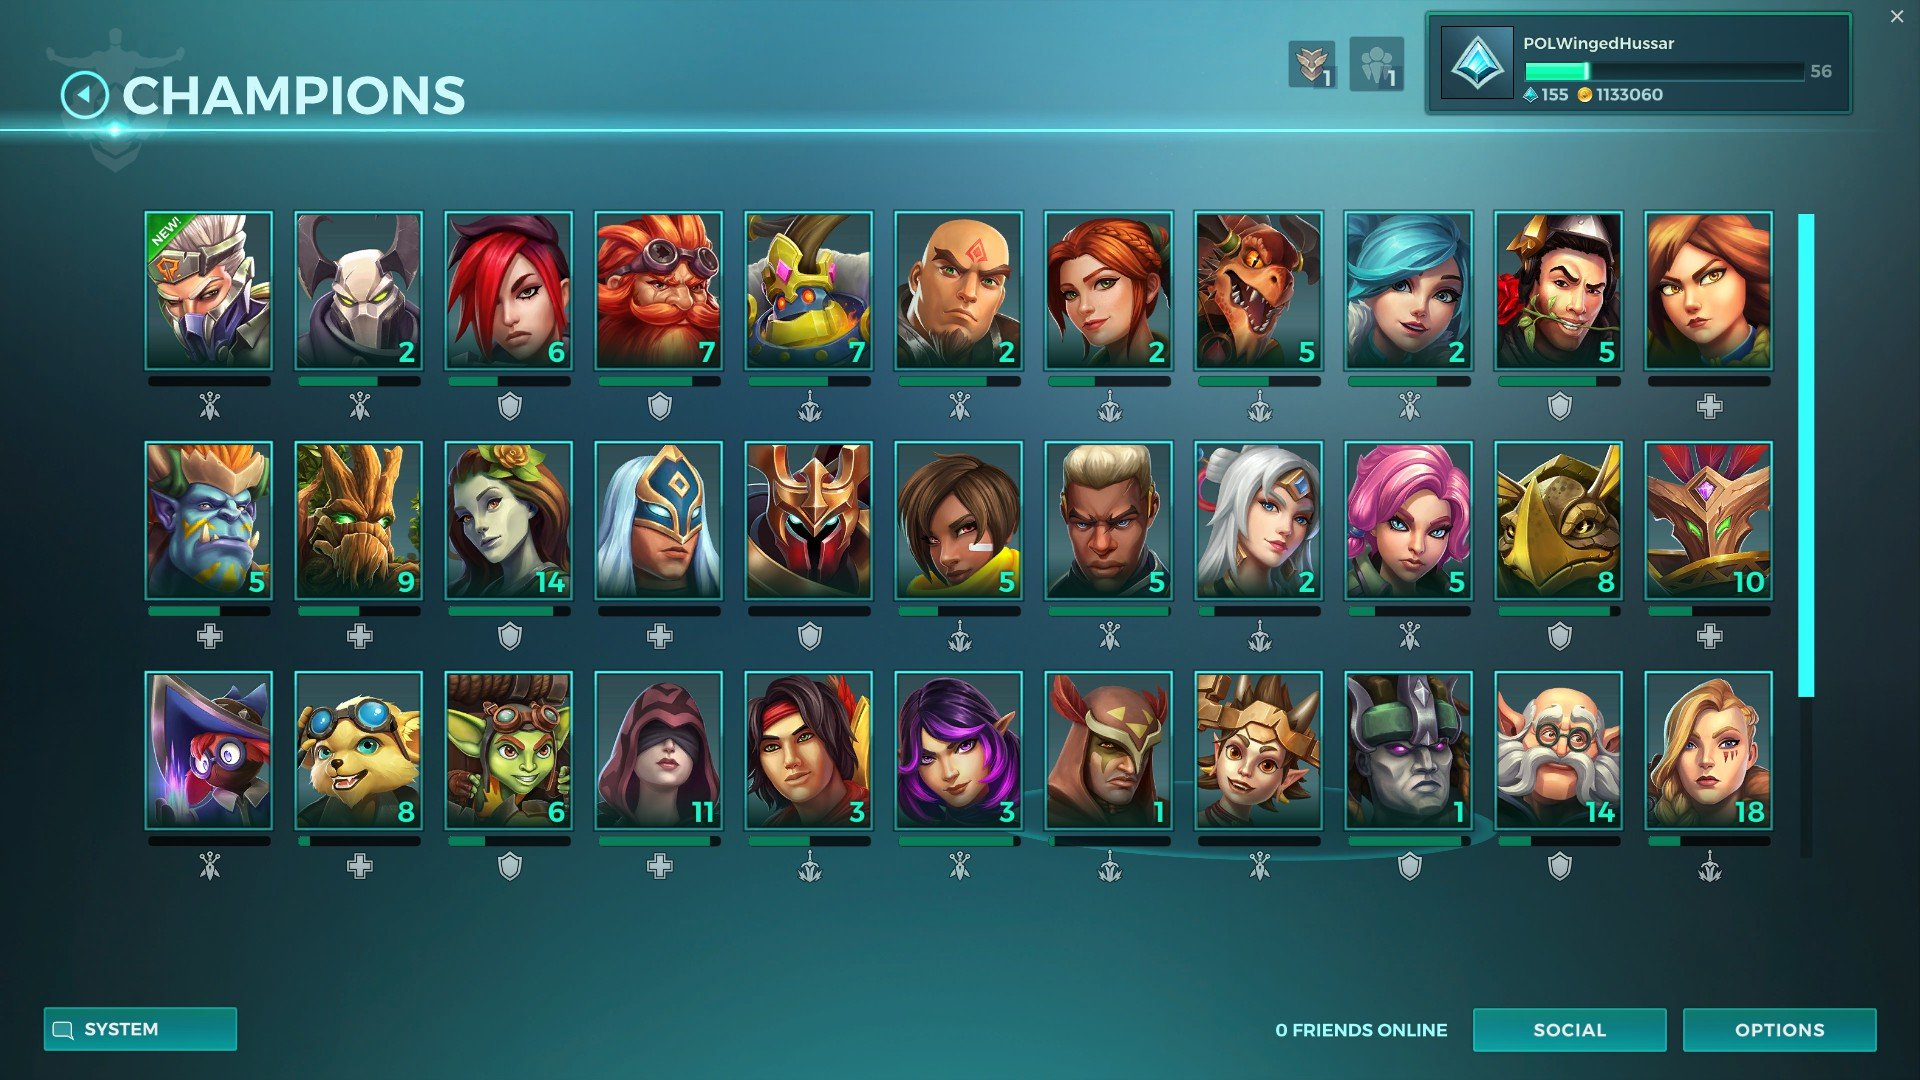 How to unlock Champions in Paladins | AllGamers